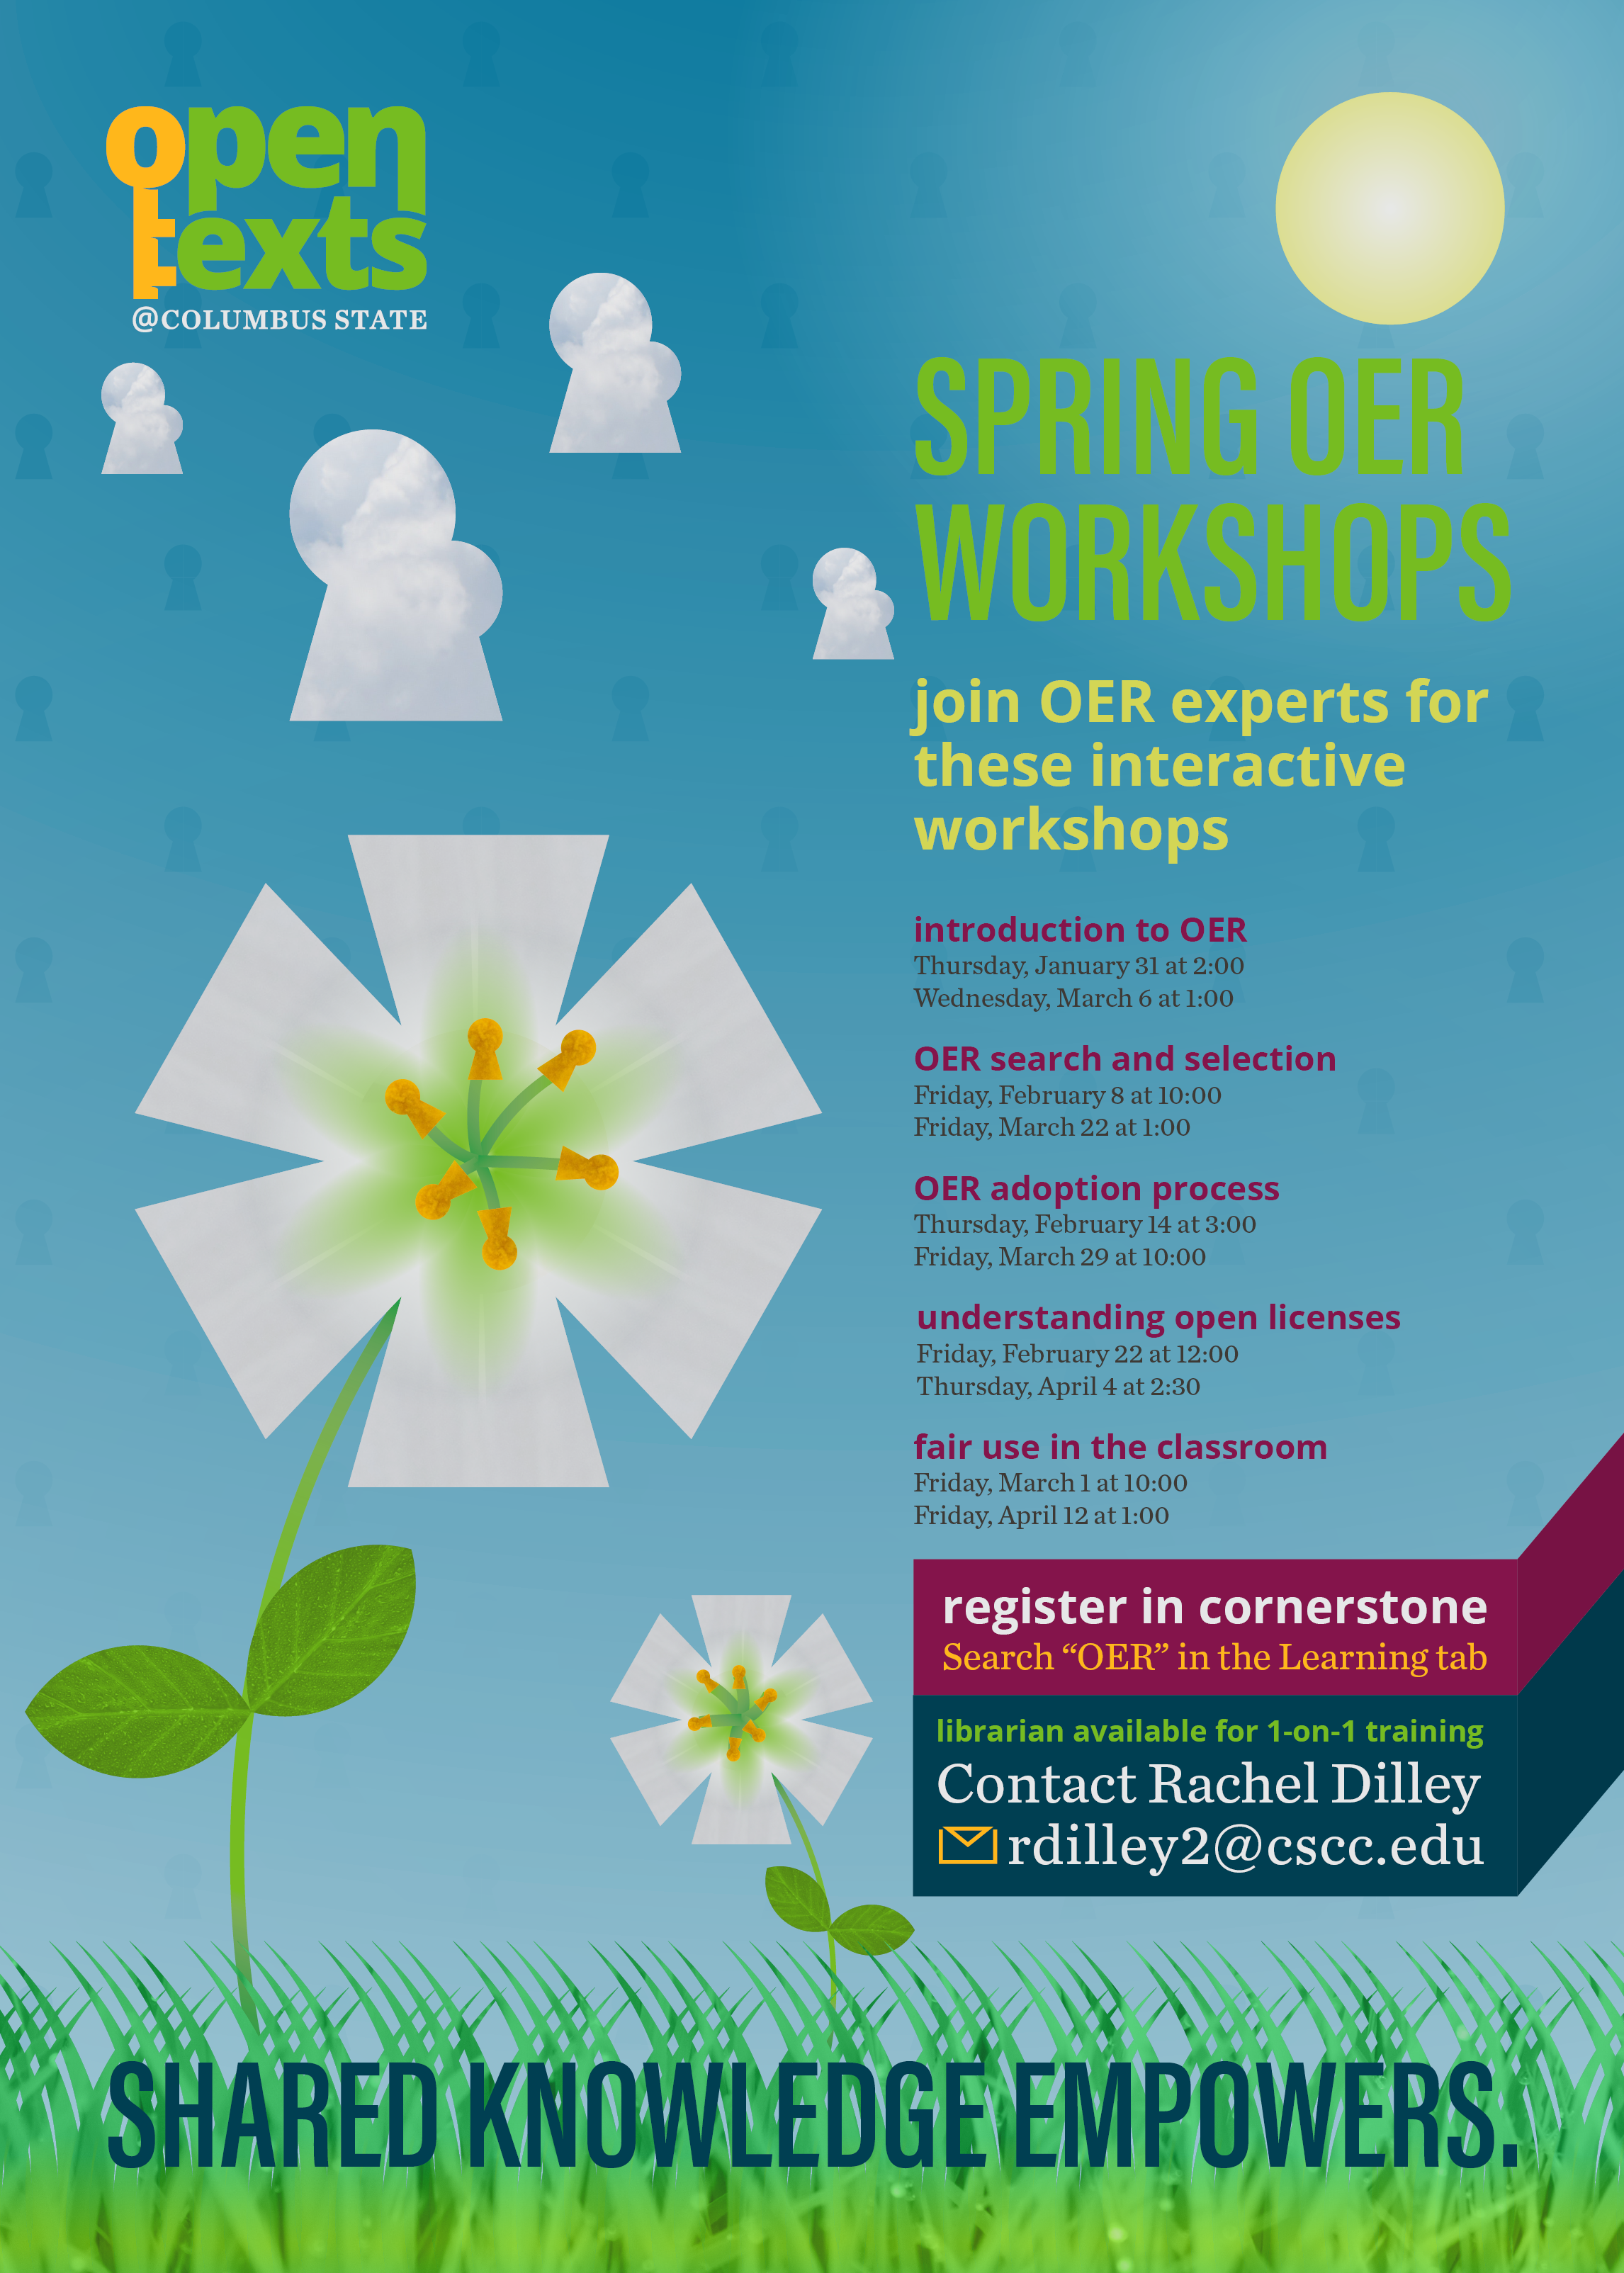 Schedule of Spring 2019 OER workshops, available for registration in Cornerstone.